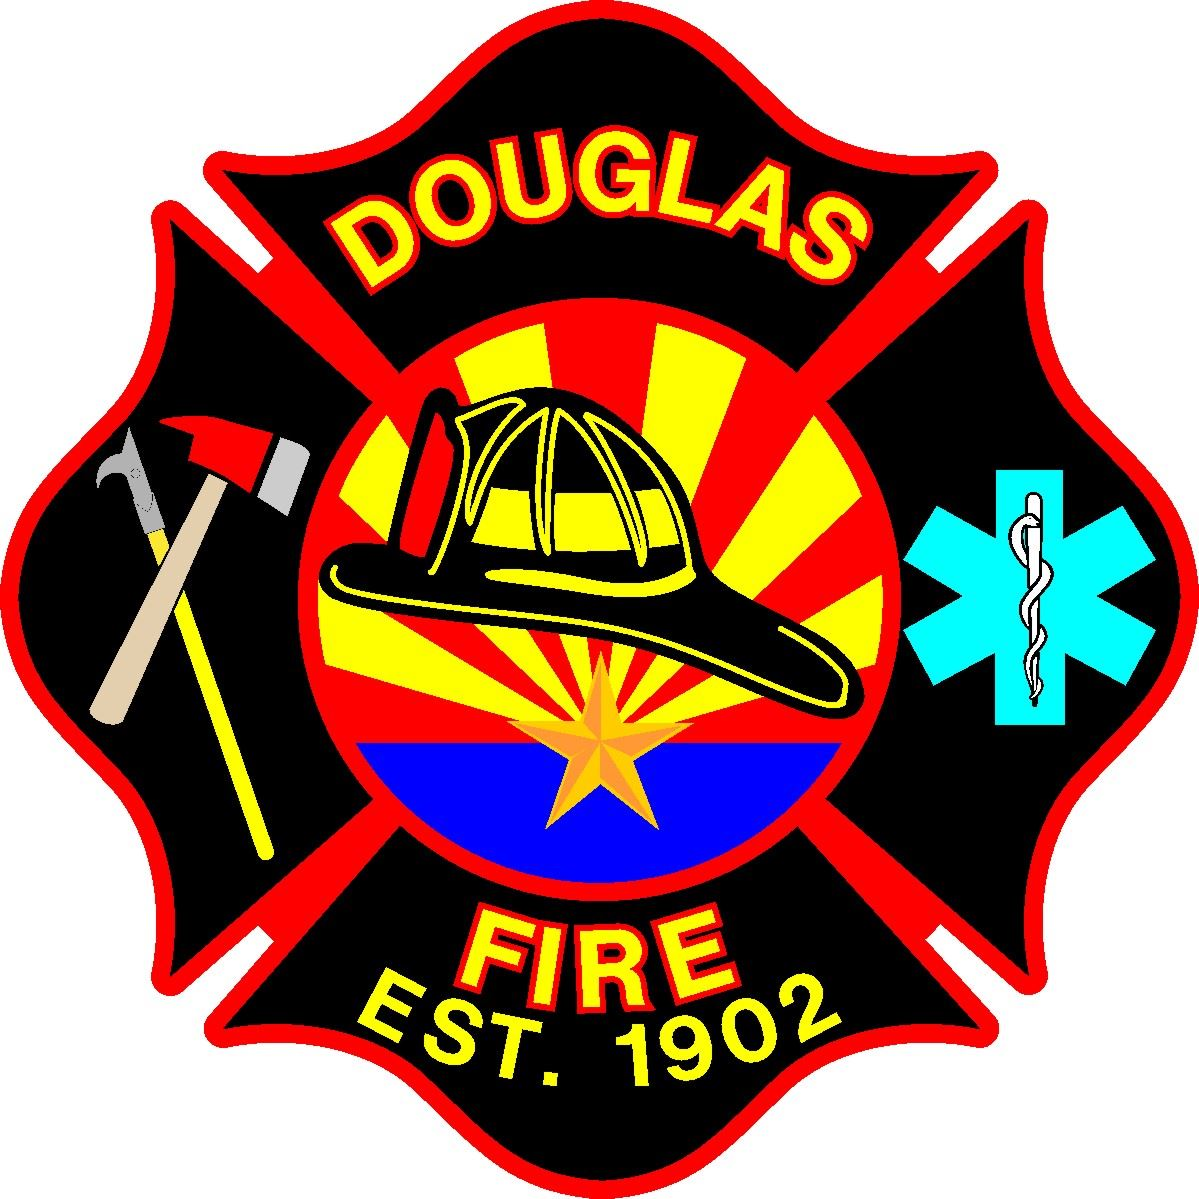 Douglas Fire Department Logo